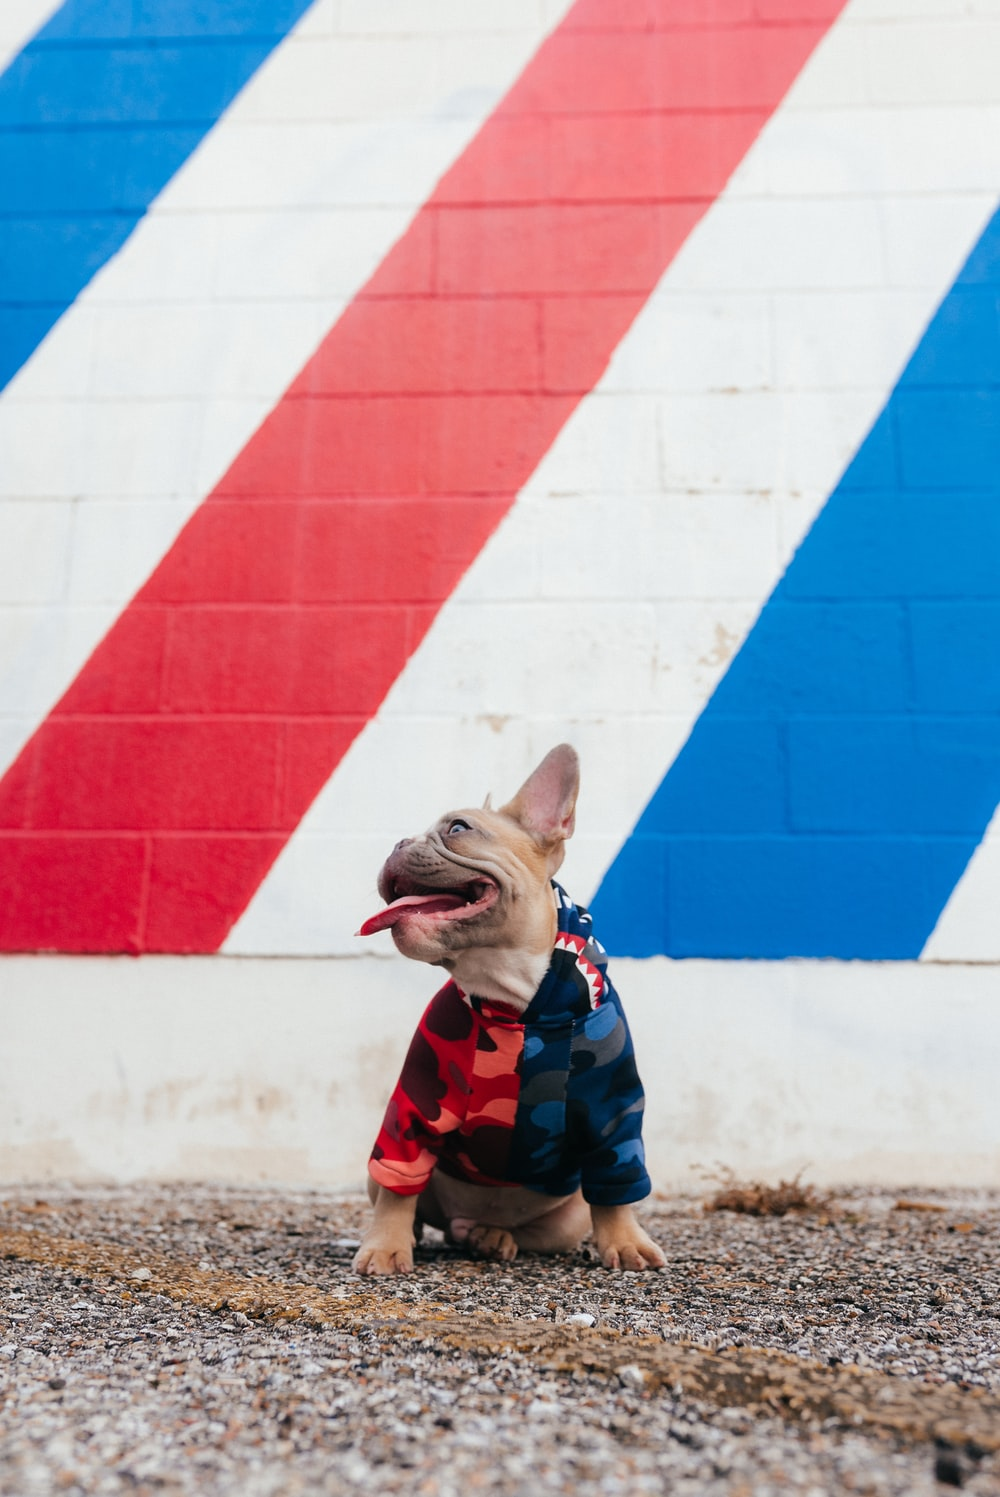 brown and white short coated dog wearing red and blue shirt